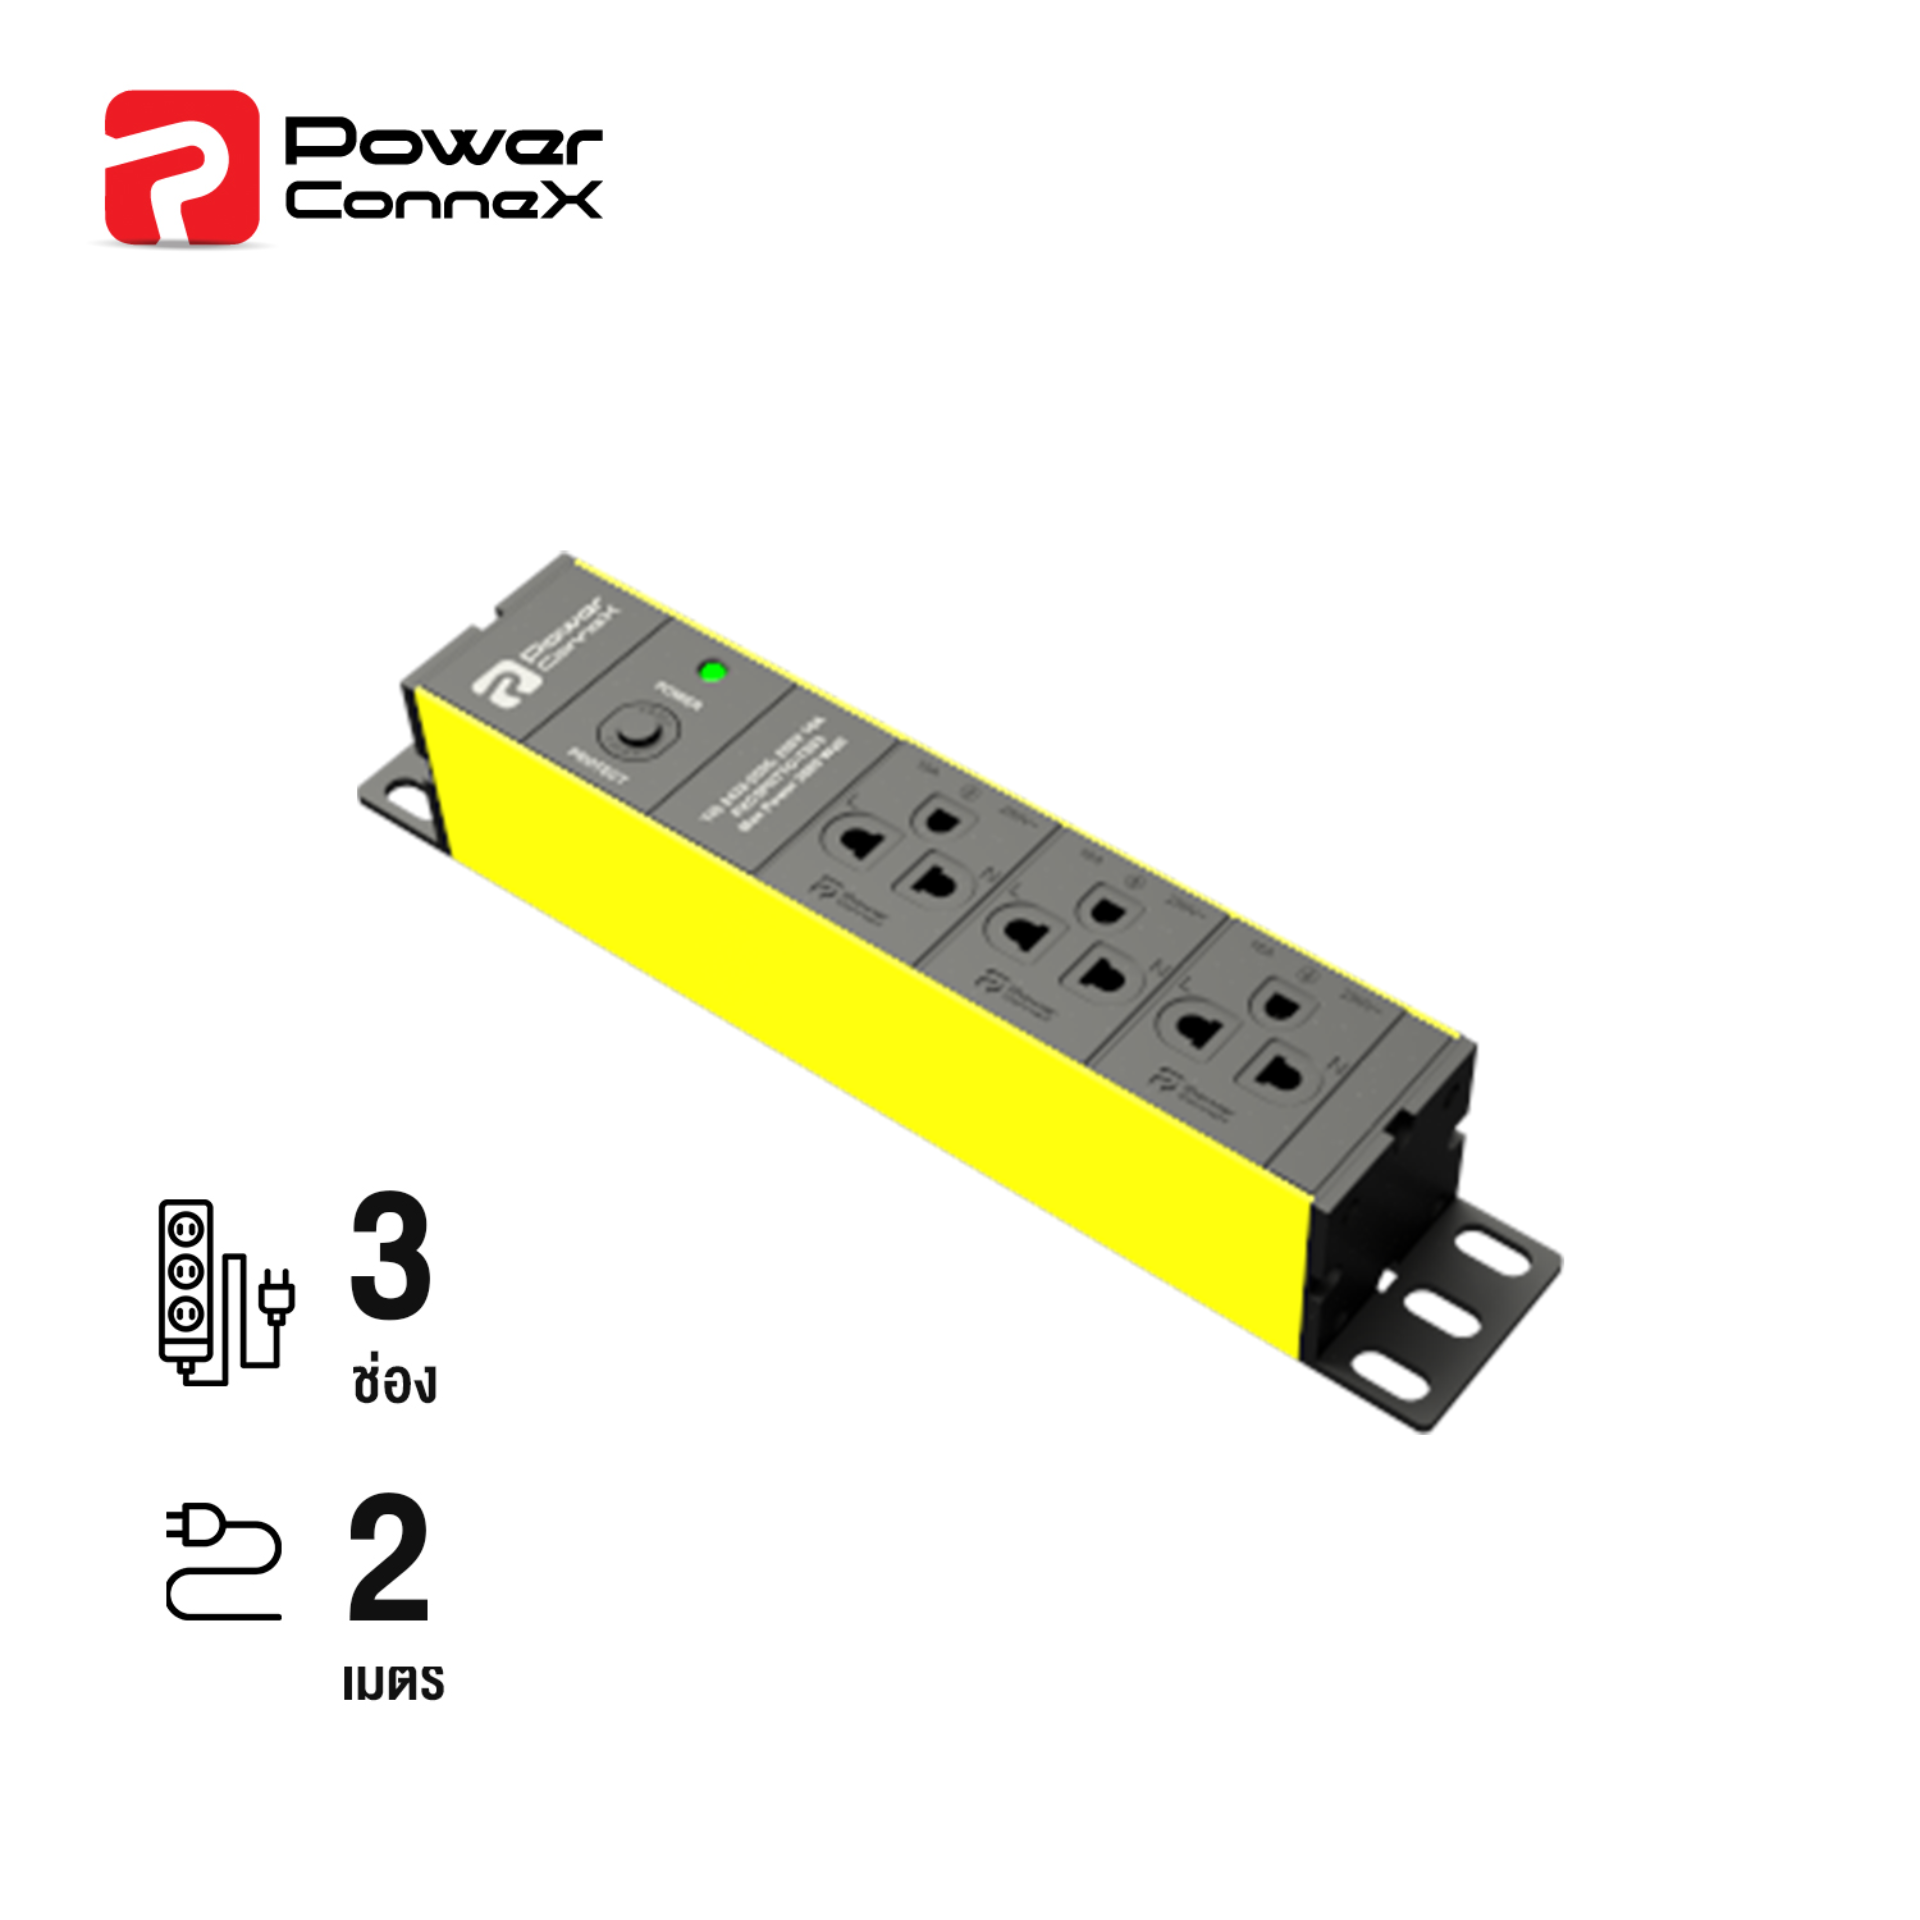 Powerconnex (yellow) 3xtis Outlets, With Double Protection Surge Protection & Overload Protection (pcx-Pxc5phtto-Ts03).